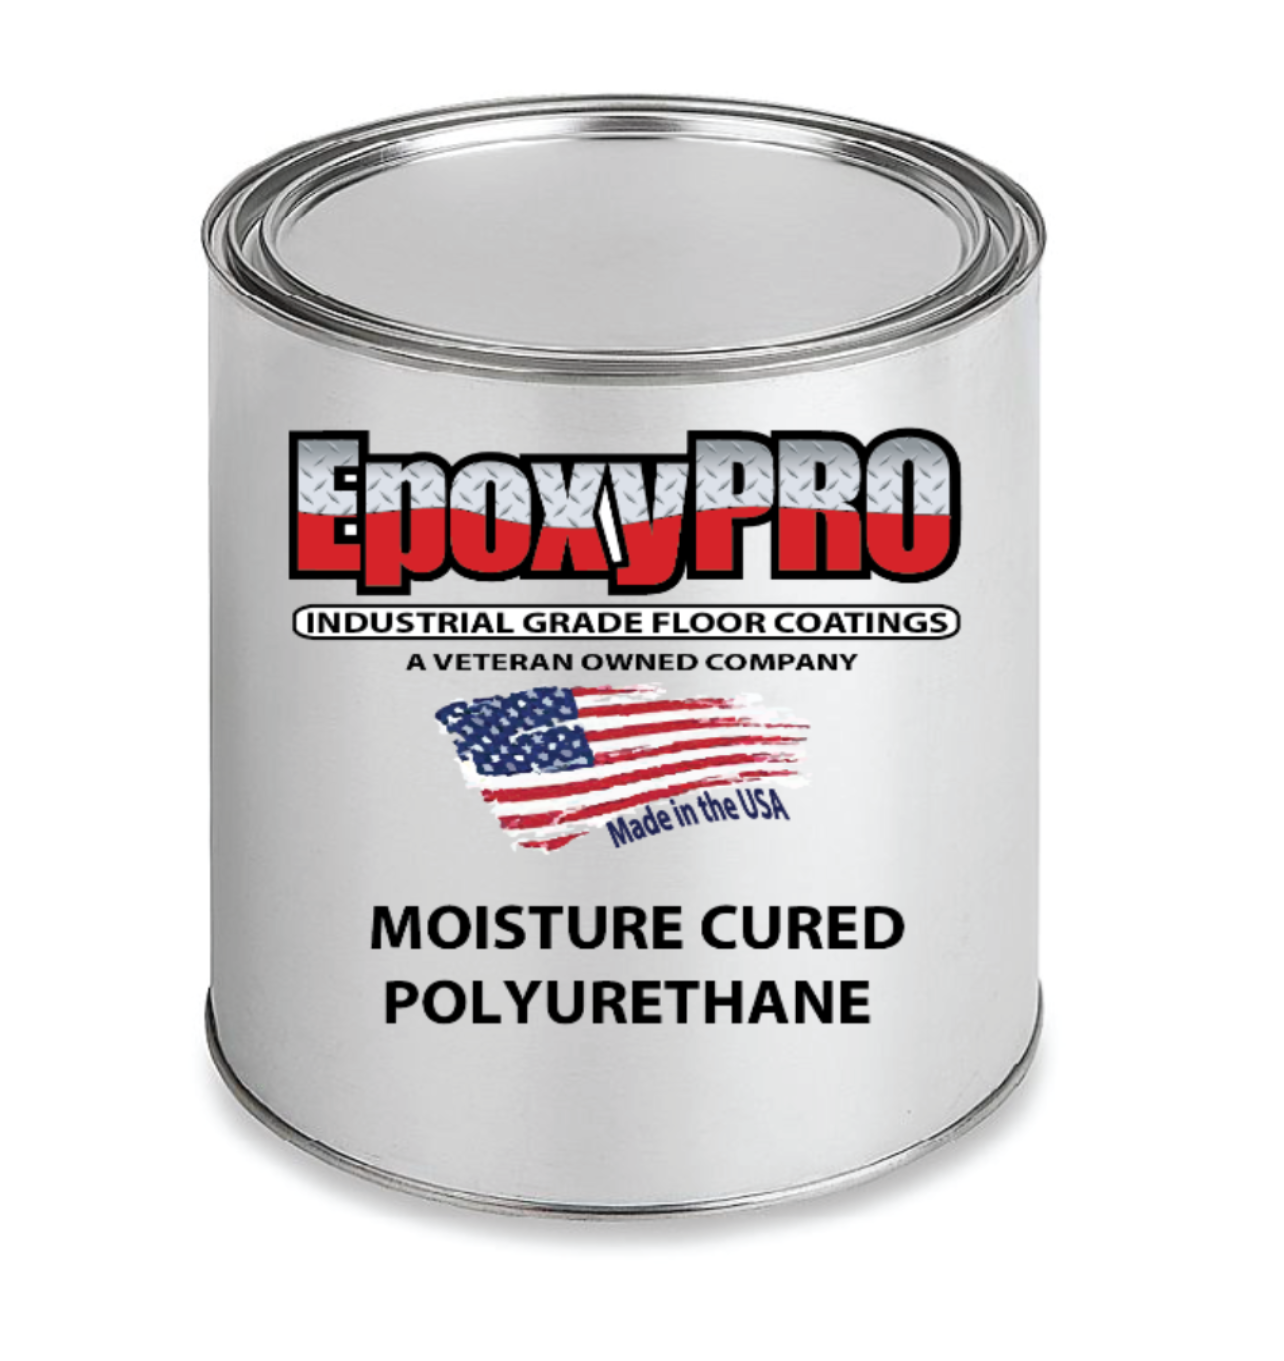 What is the best Polyurethane for epoxy floor